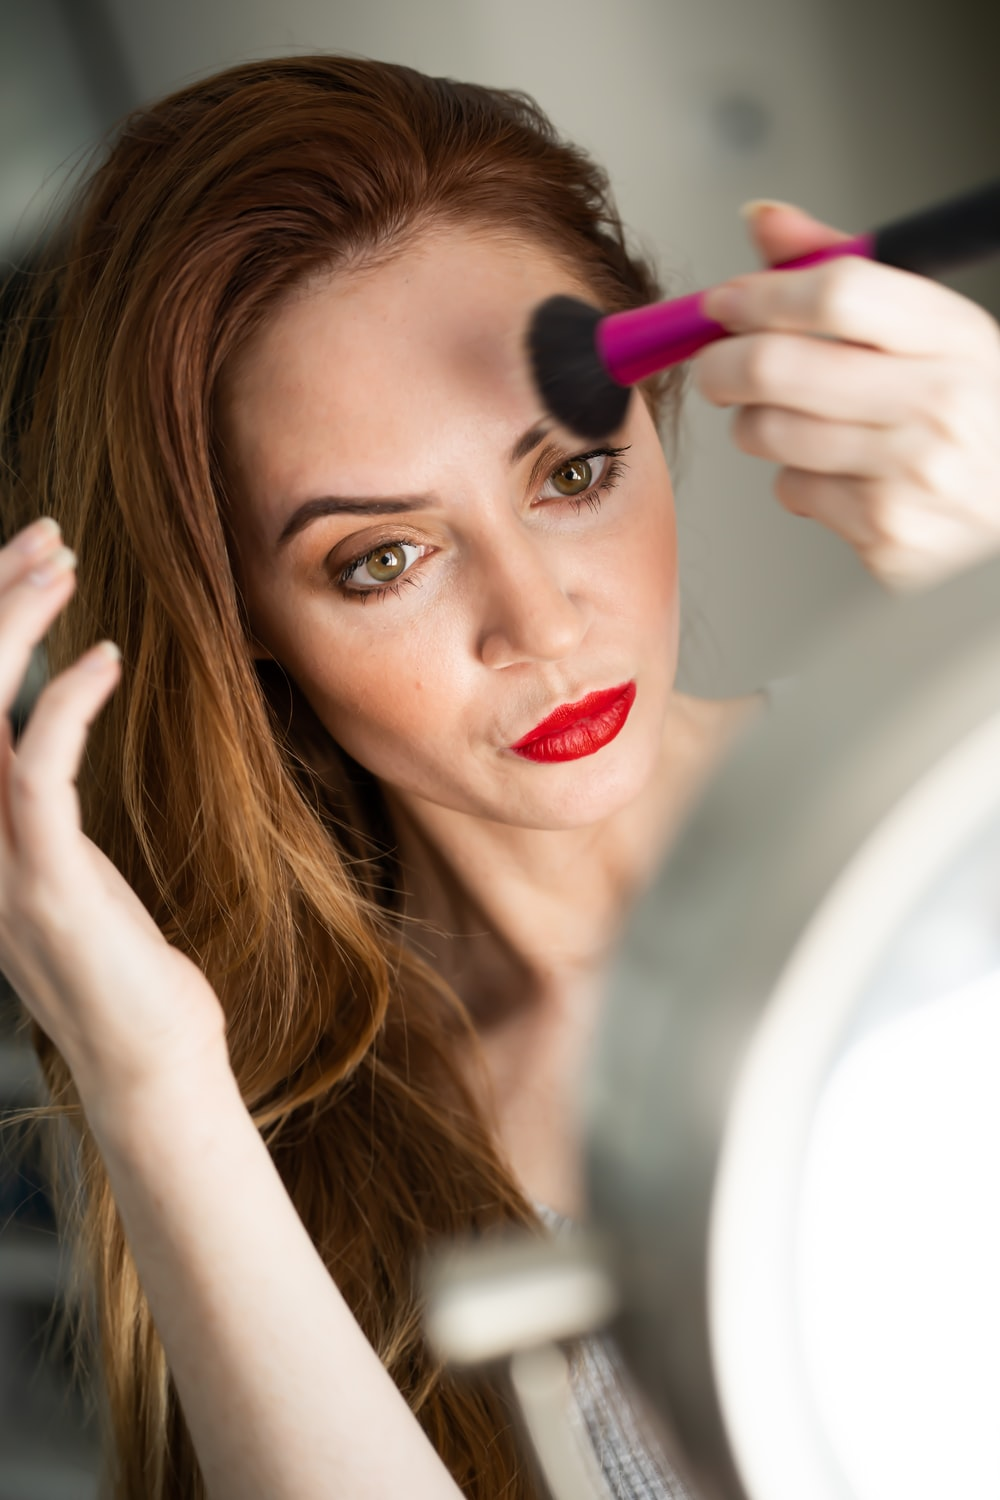 woman facing mirror holding makeup brush